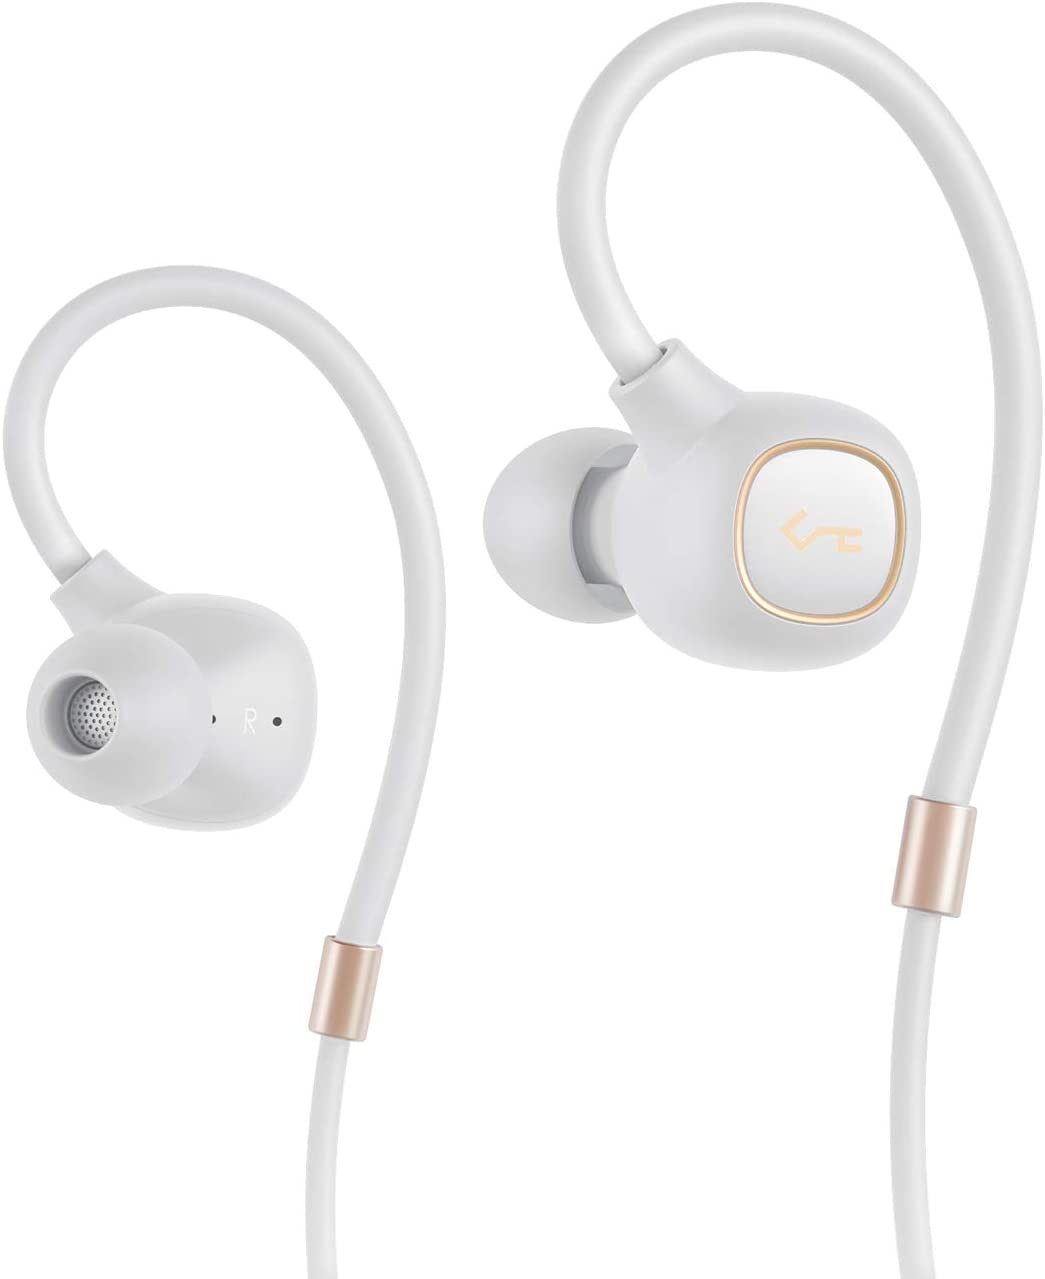 AUKEY Wireless Headphones, Key Series Bluetooth 5 Earbuds with AptX Low Latency, Hi-Res Balanced Armature Driver, IPX6 Waterproof, Flexible Ear-Hook, USB-C Fast Charging and Bult-in Mic